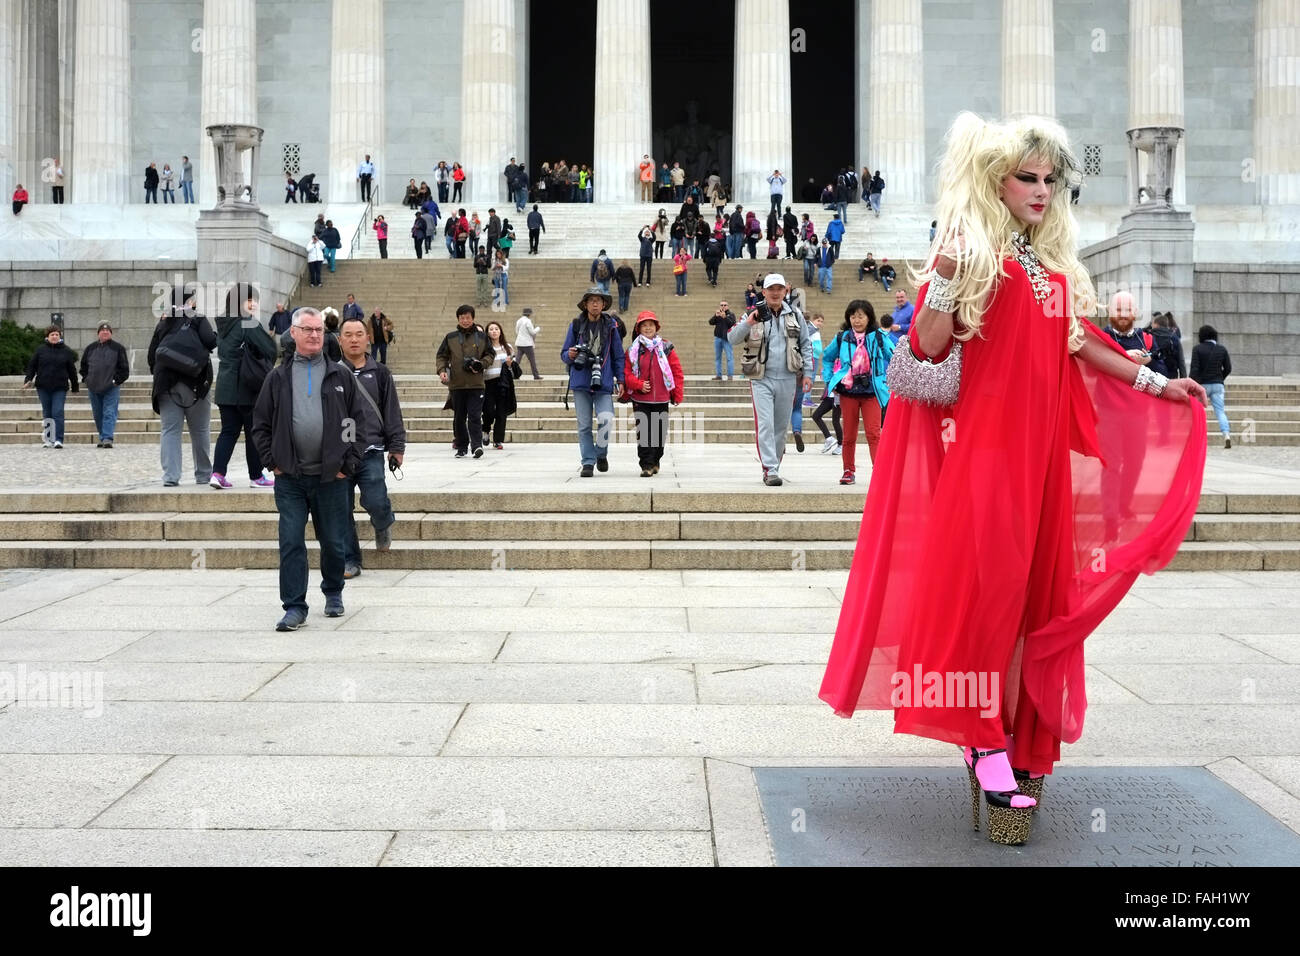 a-transsexual-walks-across-the-concourse